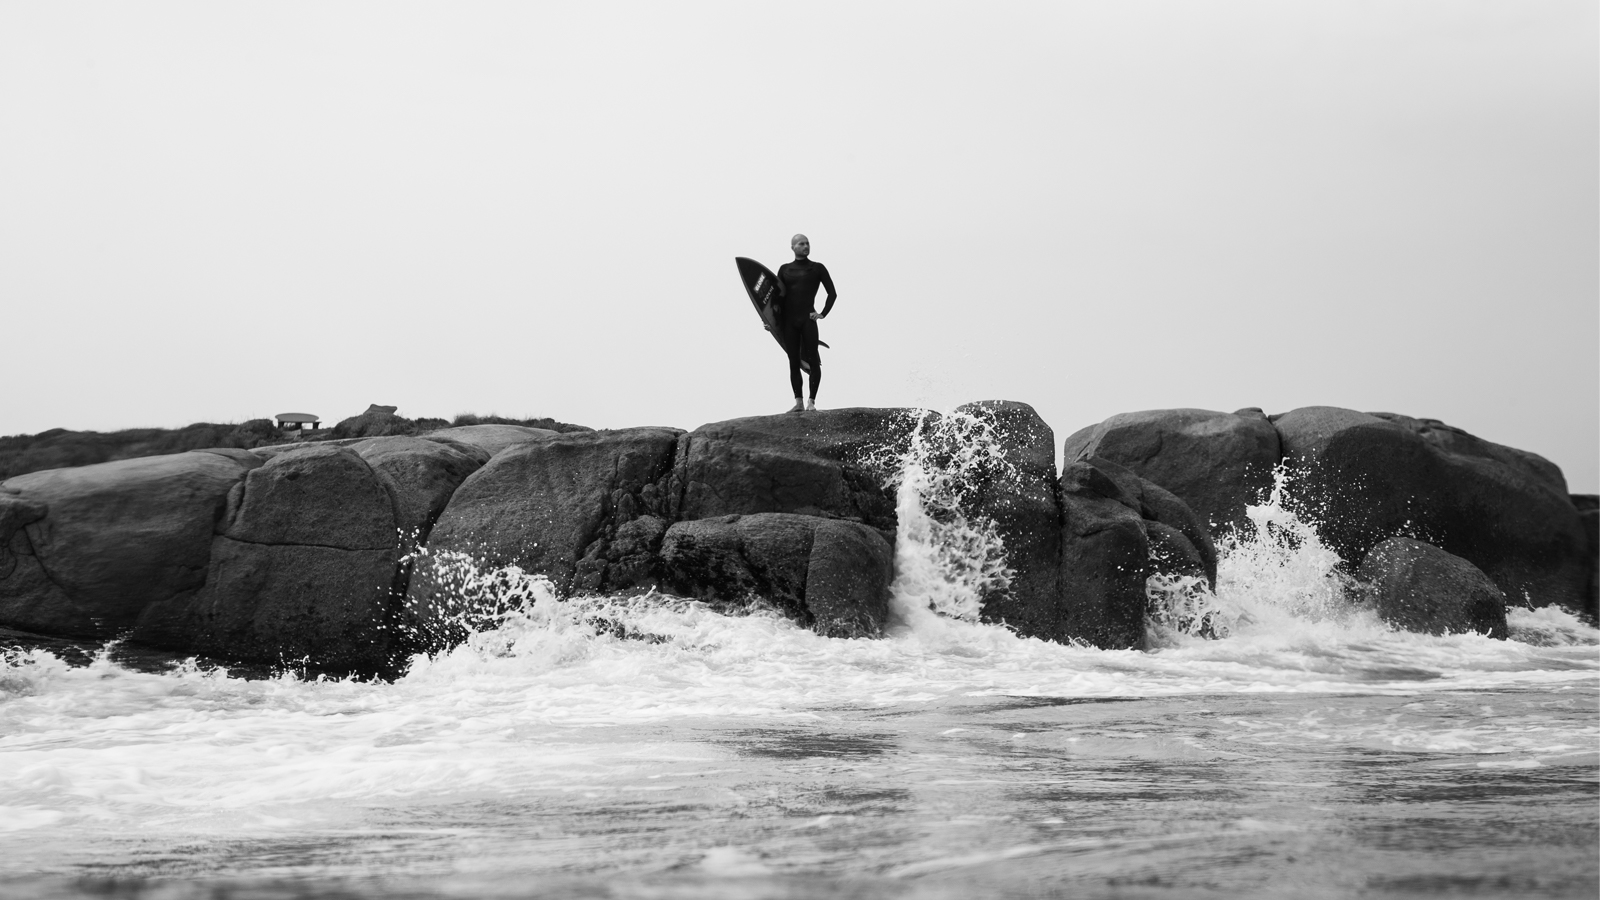 Manera Wetsuits FW 21/22 Preview